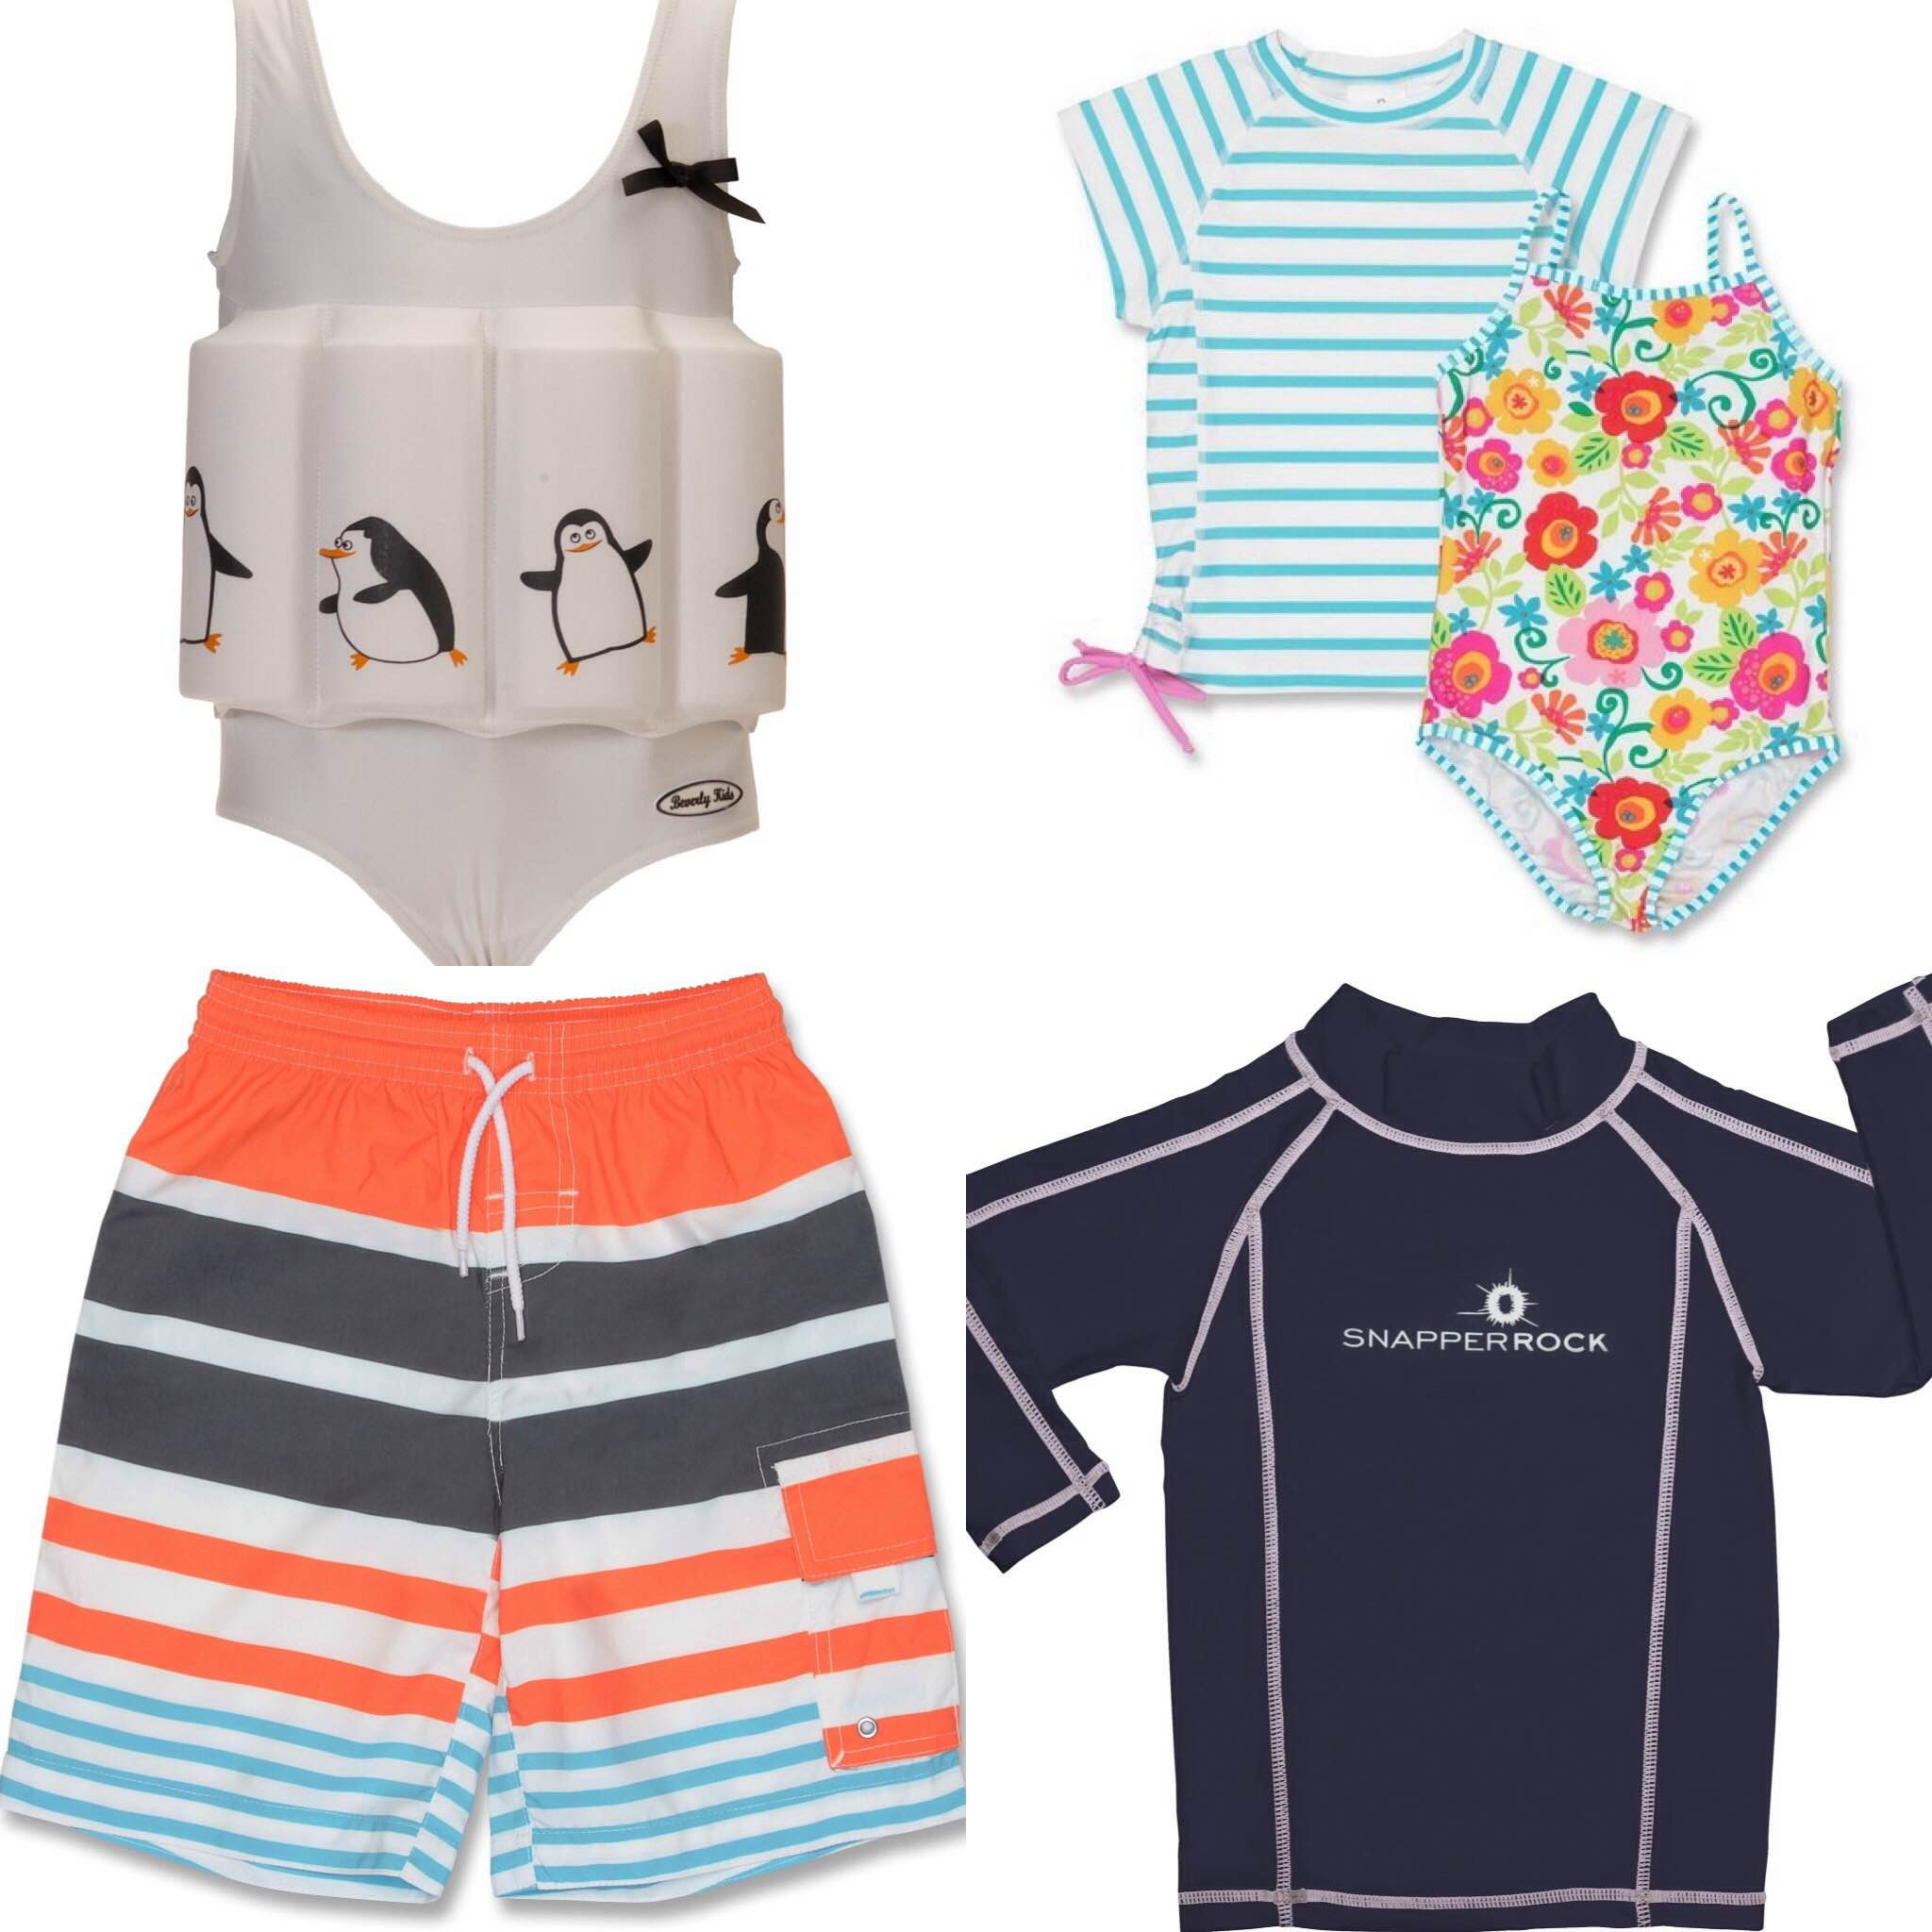 Swimwear variety from UV fashions